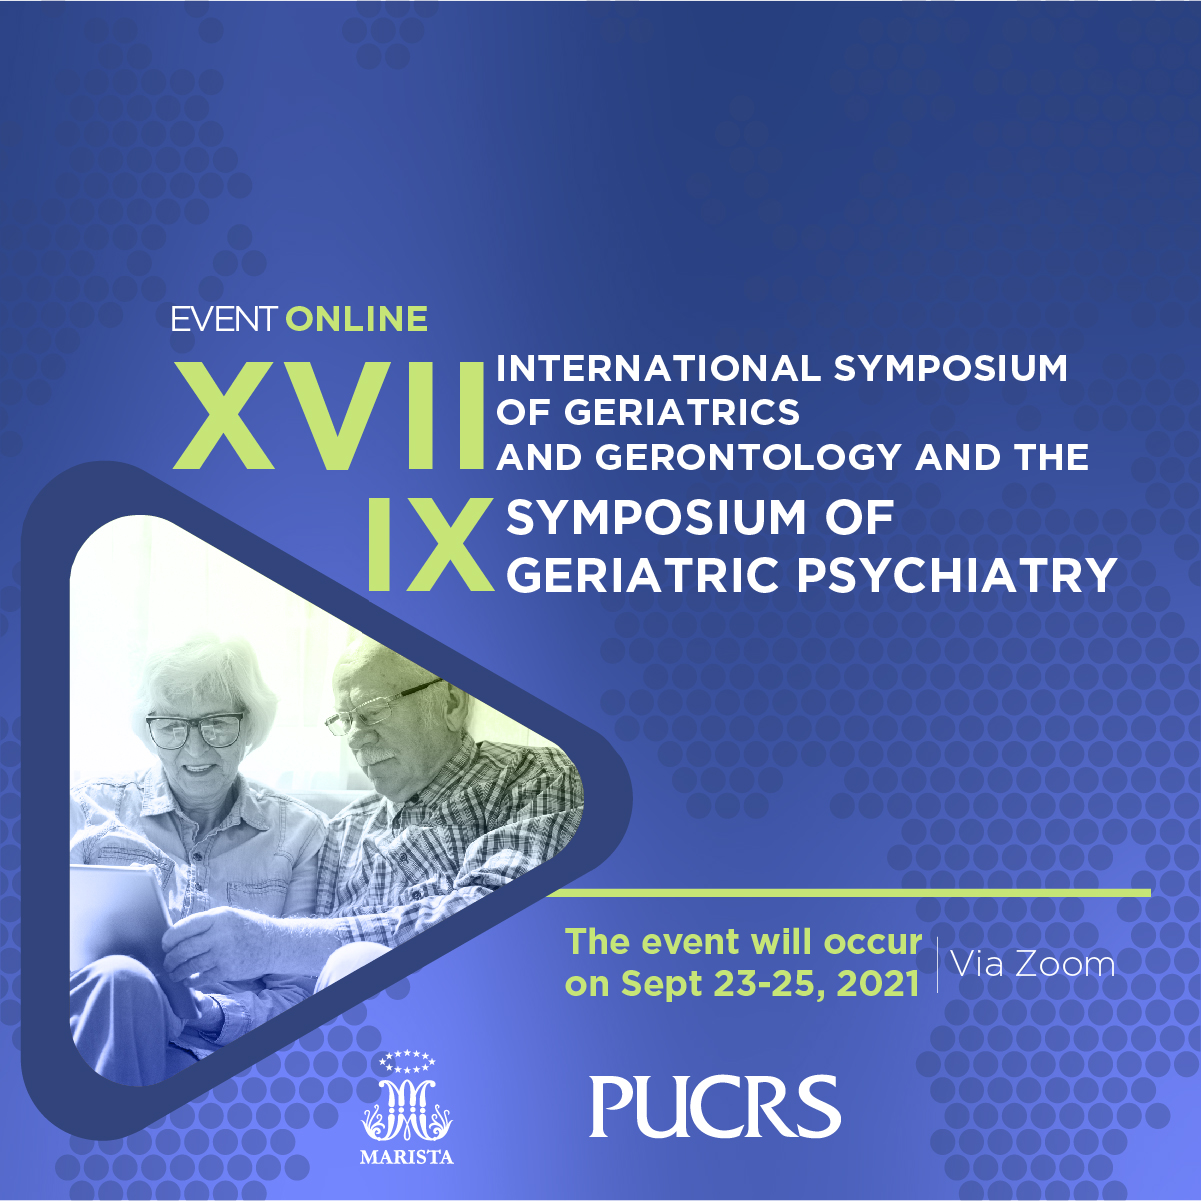 PUCRS Institute of Geriatrics and Gerontology promotes international symposia